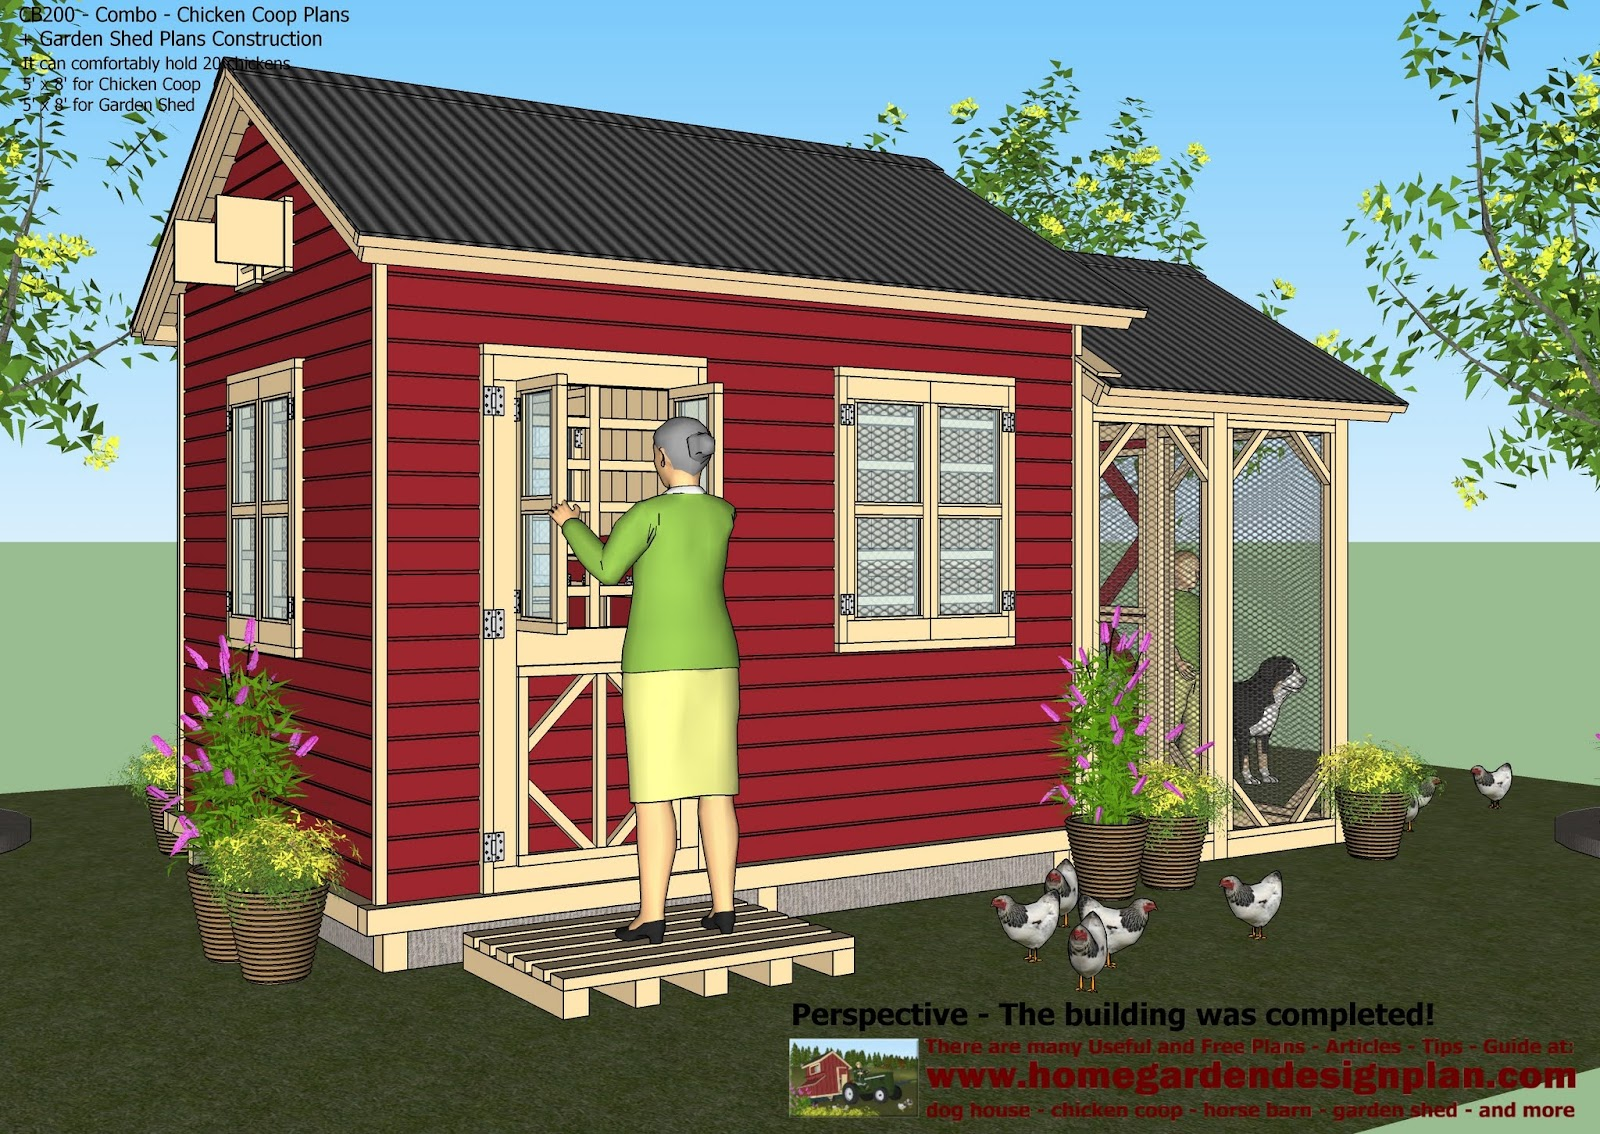 Home garden plans cb200 combo plans chicken coop for Garden house plans